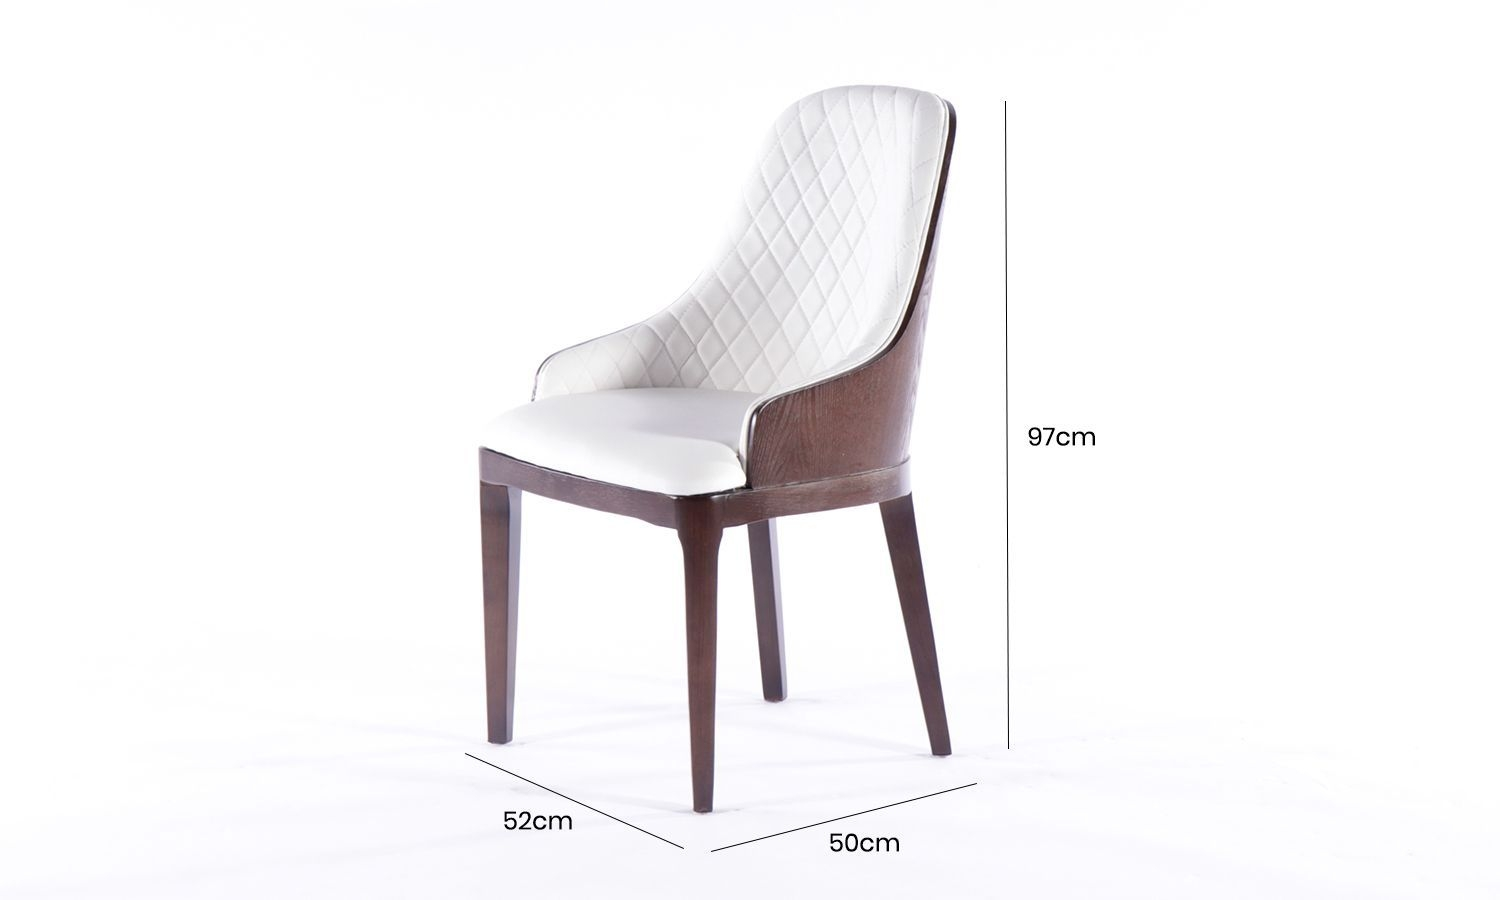 6 x Urban Deco Madrid White Faux Leather Dining Chair